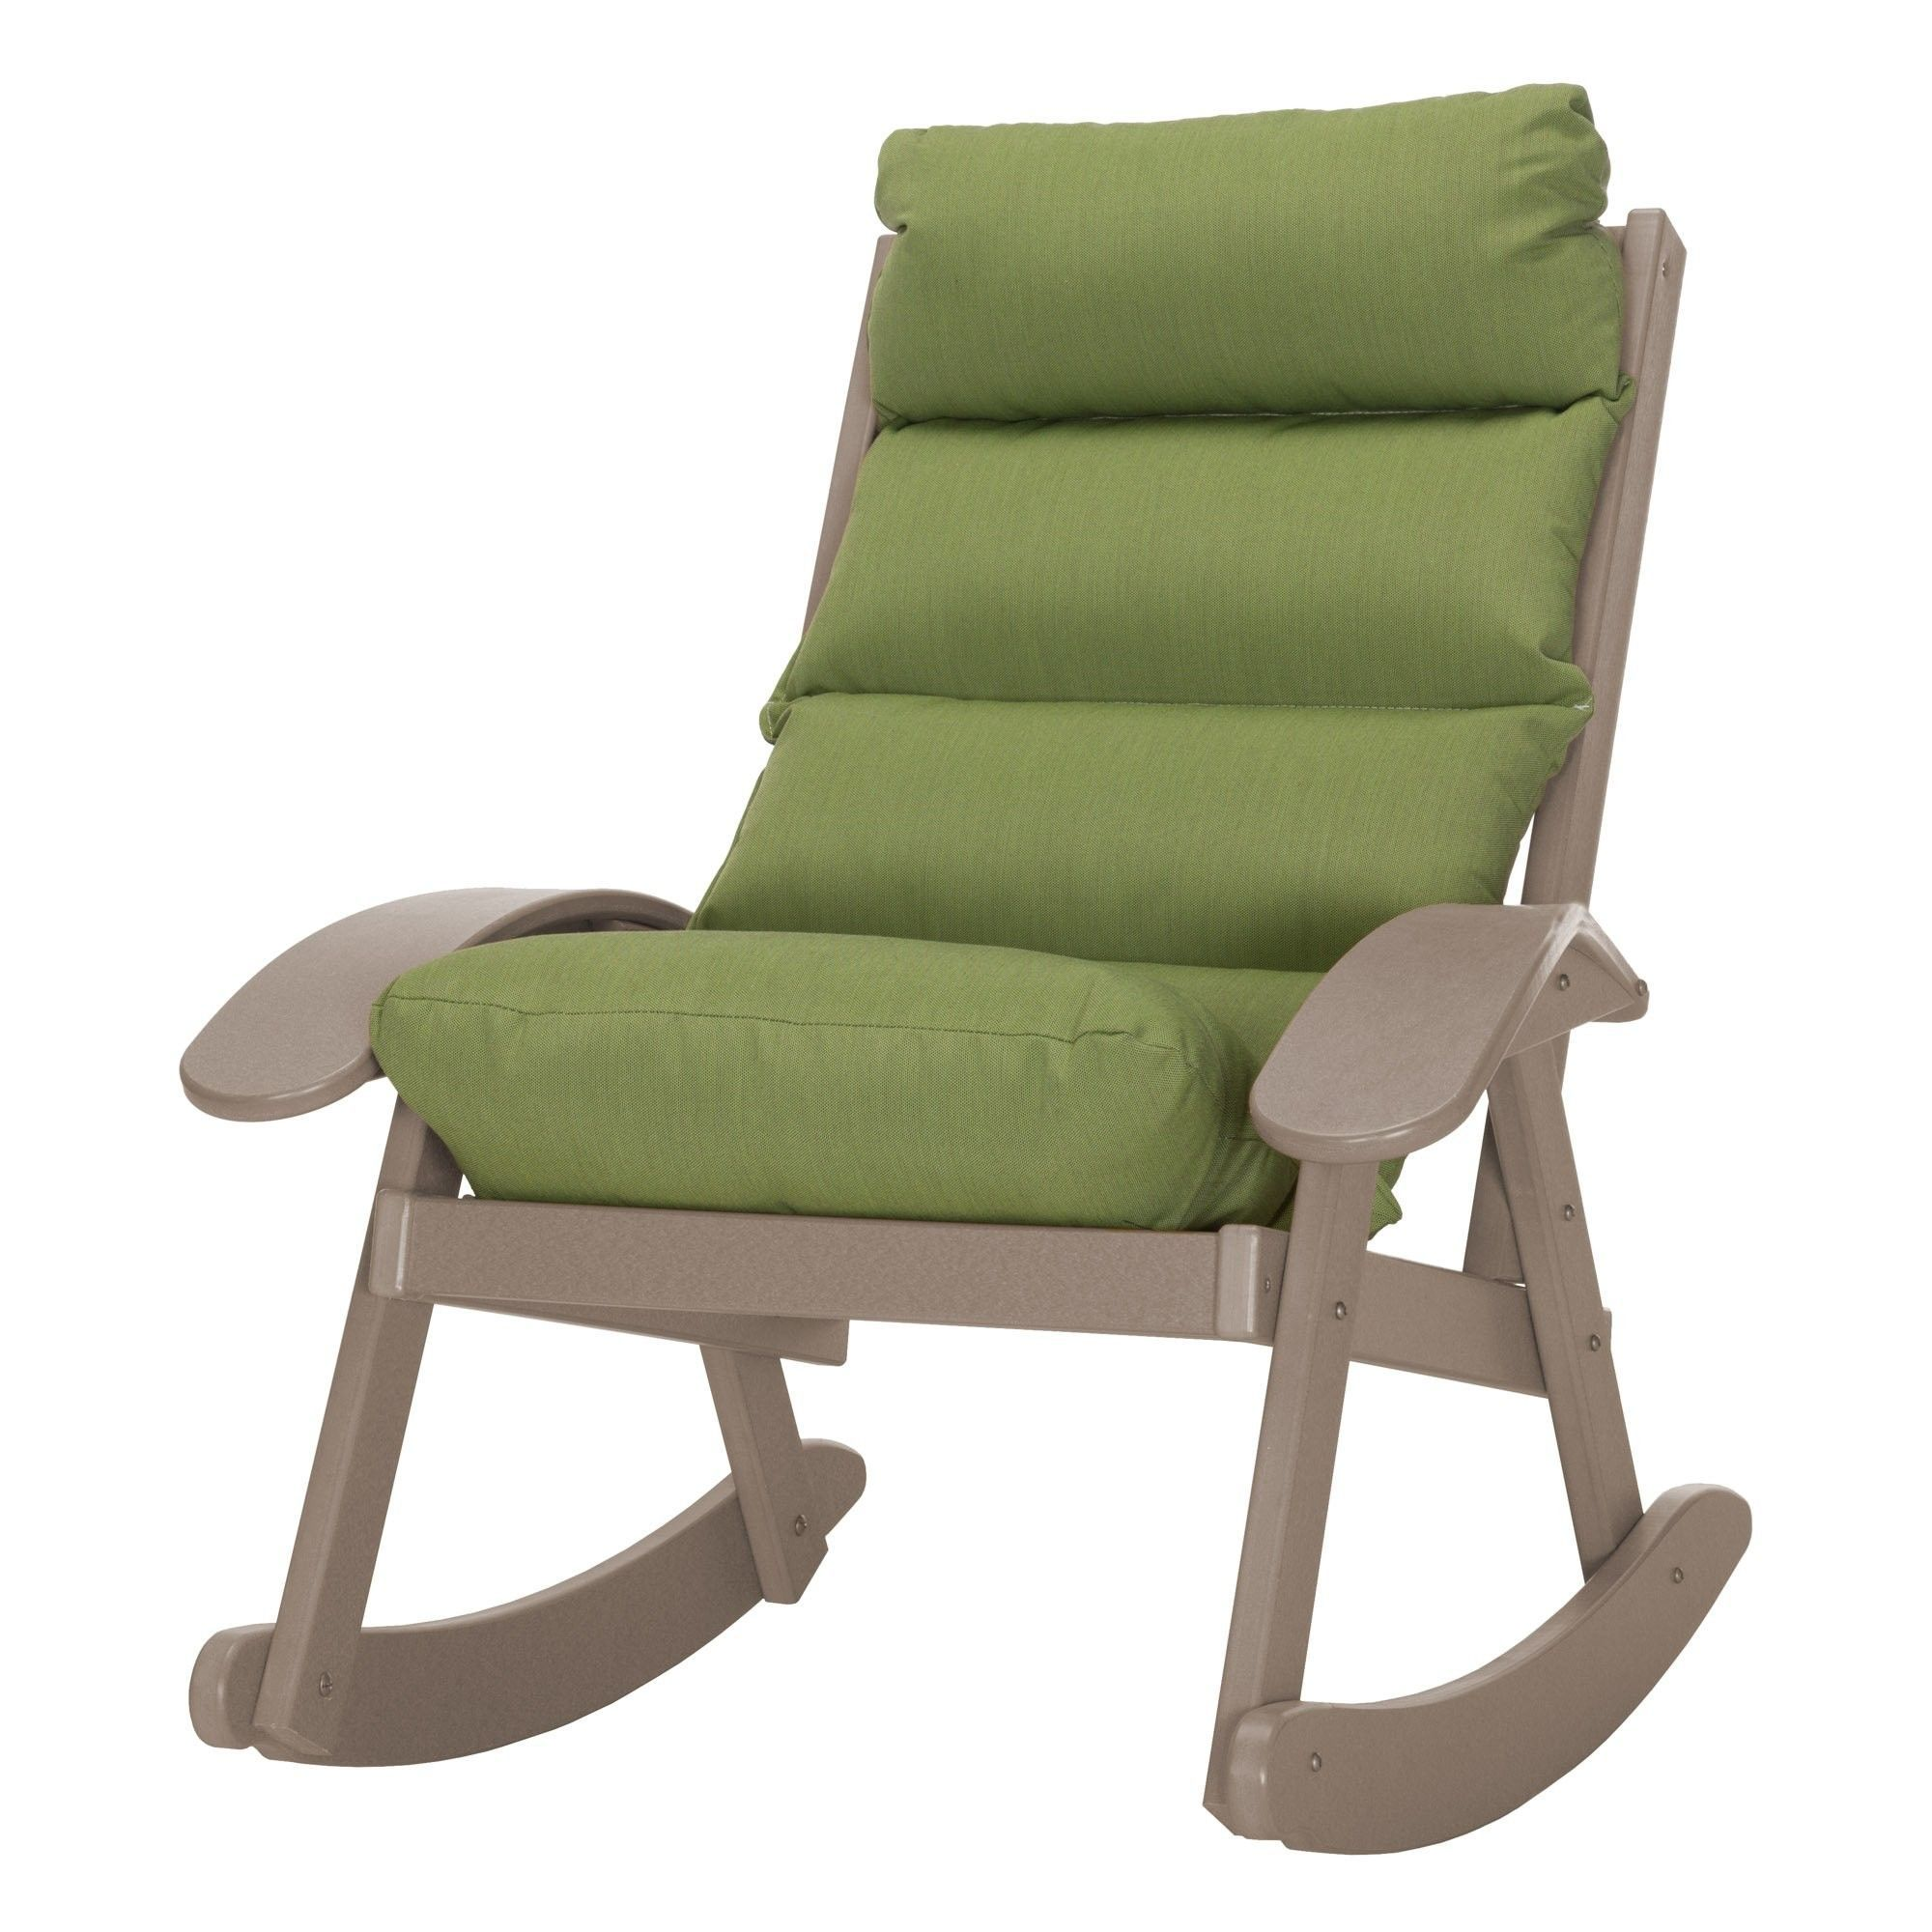 Coastal Rocking Chair with Cushions Rocking chair, Patio